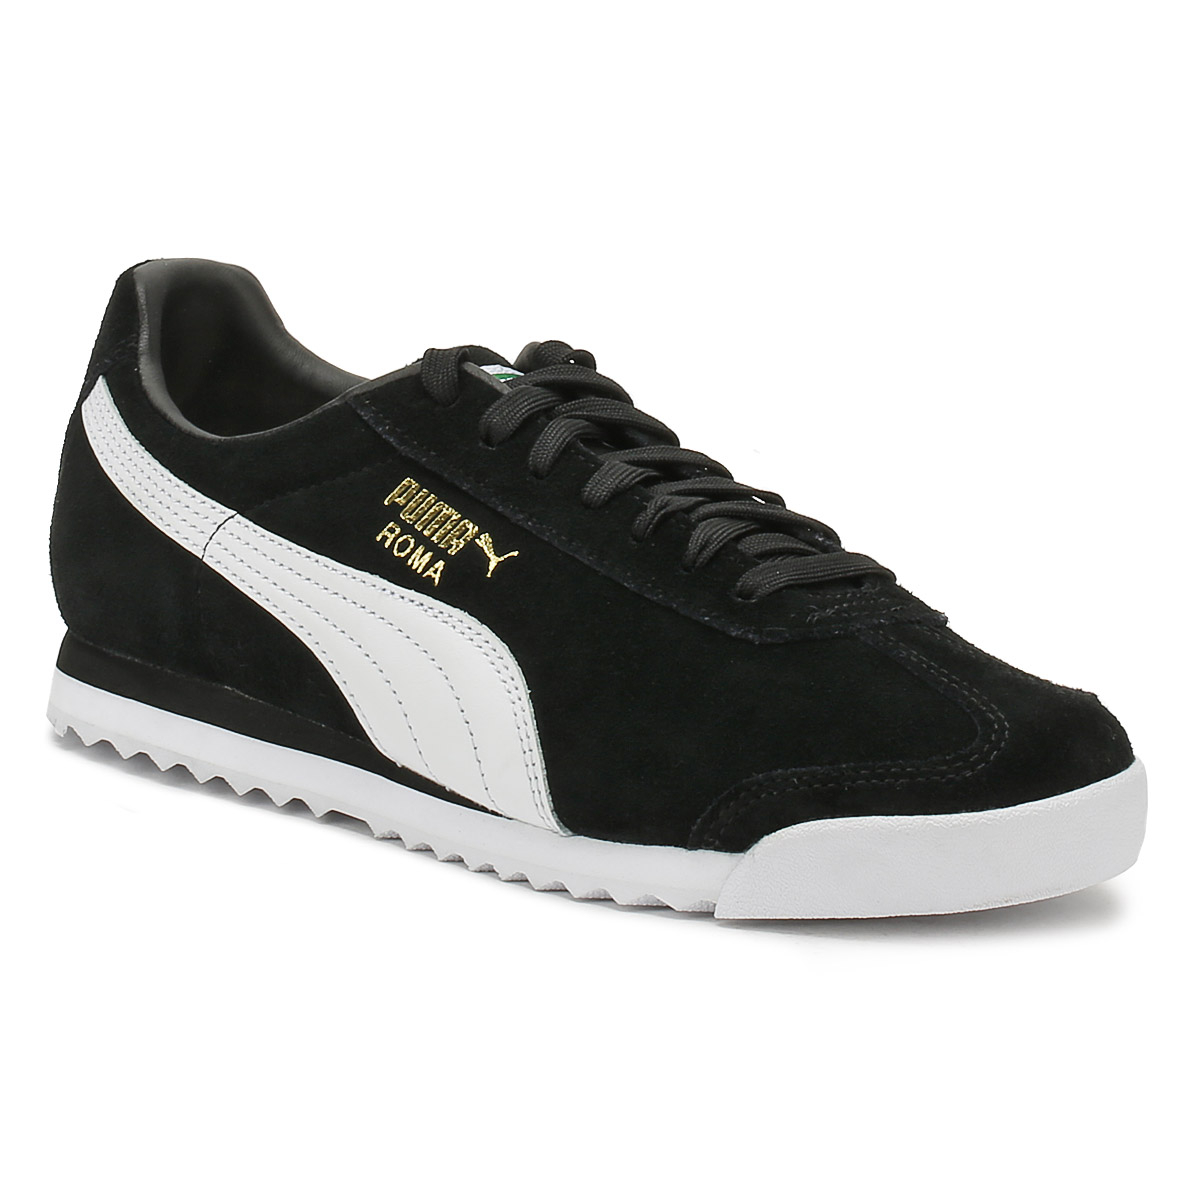 Details about PUMA Mens Trainers Black Suede Roma Lace Up Sports Casual  Shoes 588cdf190